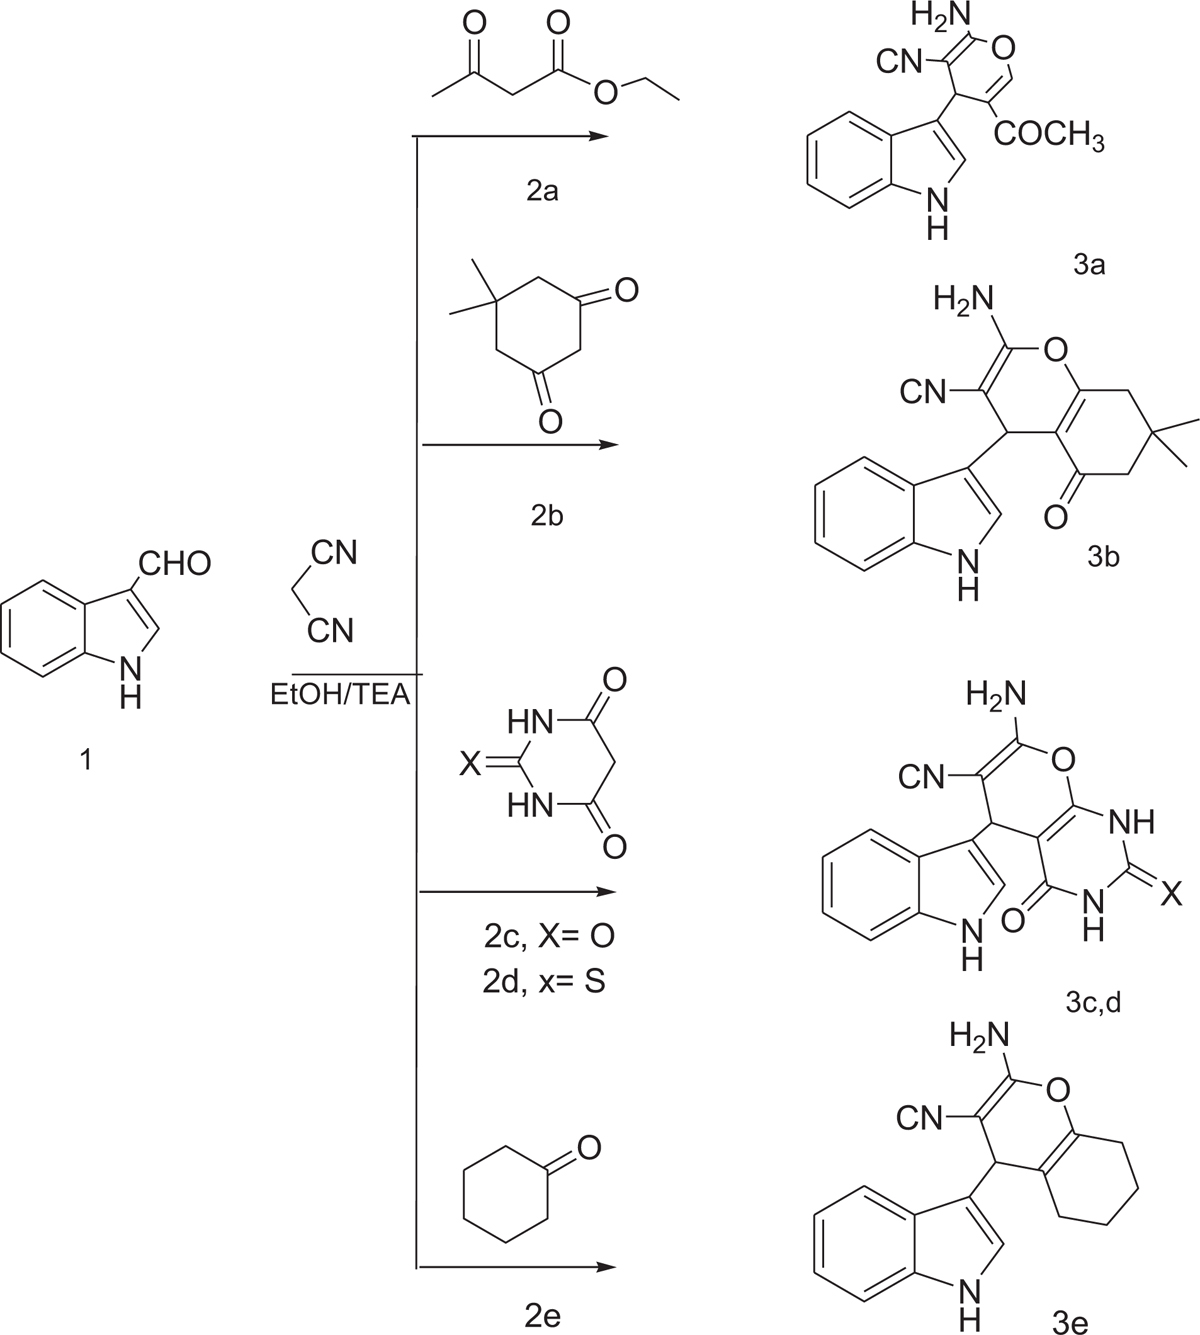 Egyptian pharmaceutical journal table of contents synthesis of new indole derivatives using one pot multicomponent reaction with antiproliferative towards normal and cancer cell lines fandeluxe Choice Image